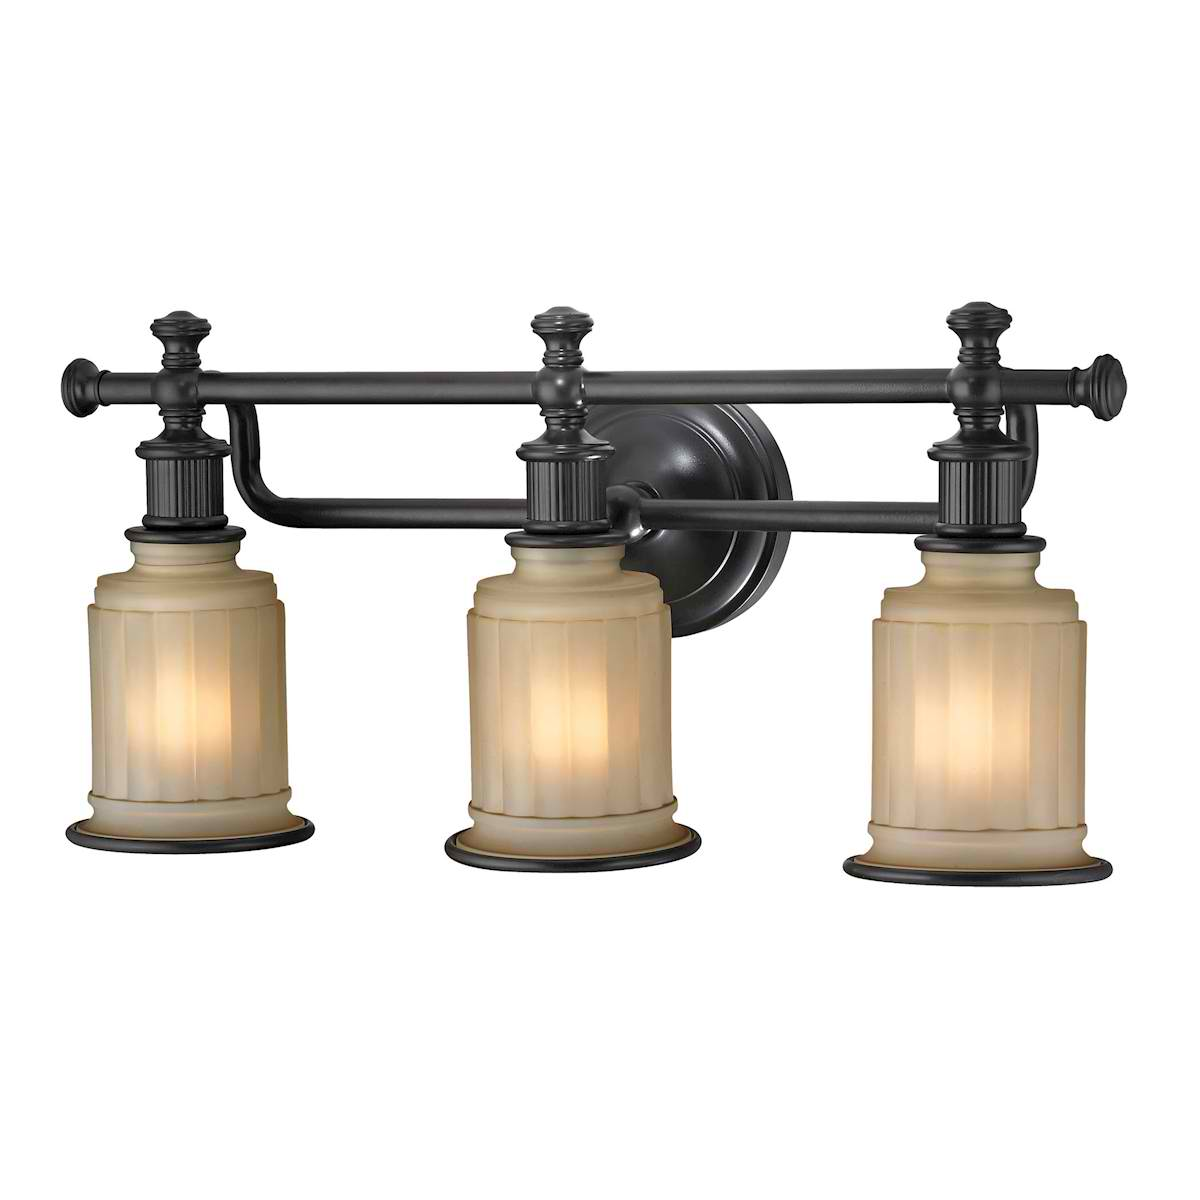 Acadia Collection 3 Light Bath in Oil Rubbed Bronze